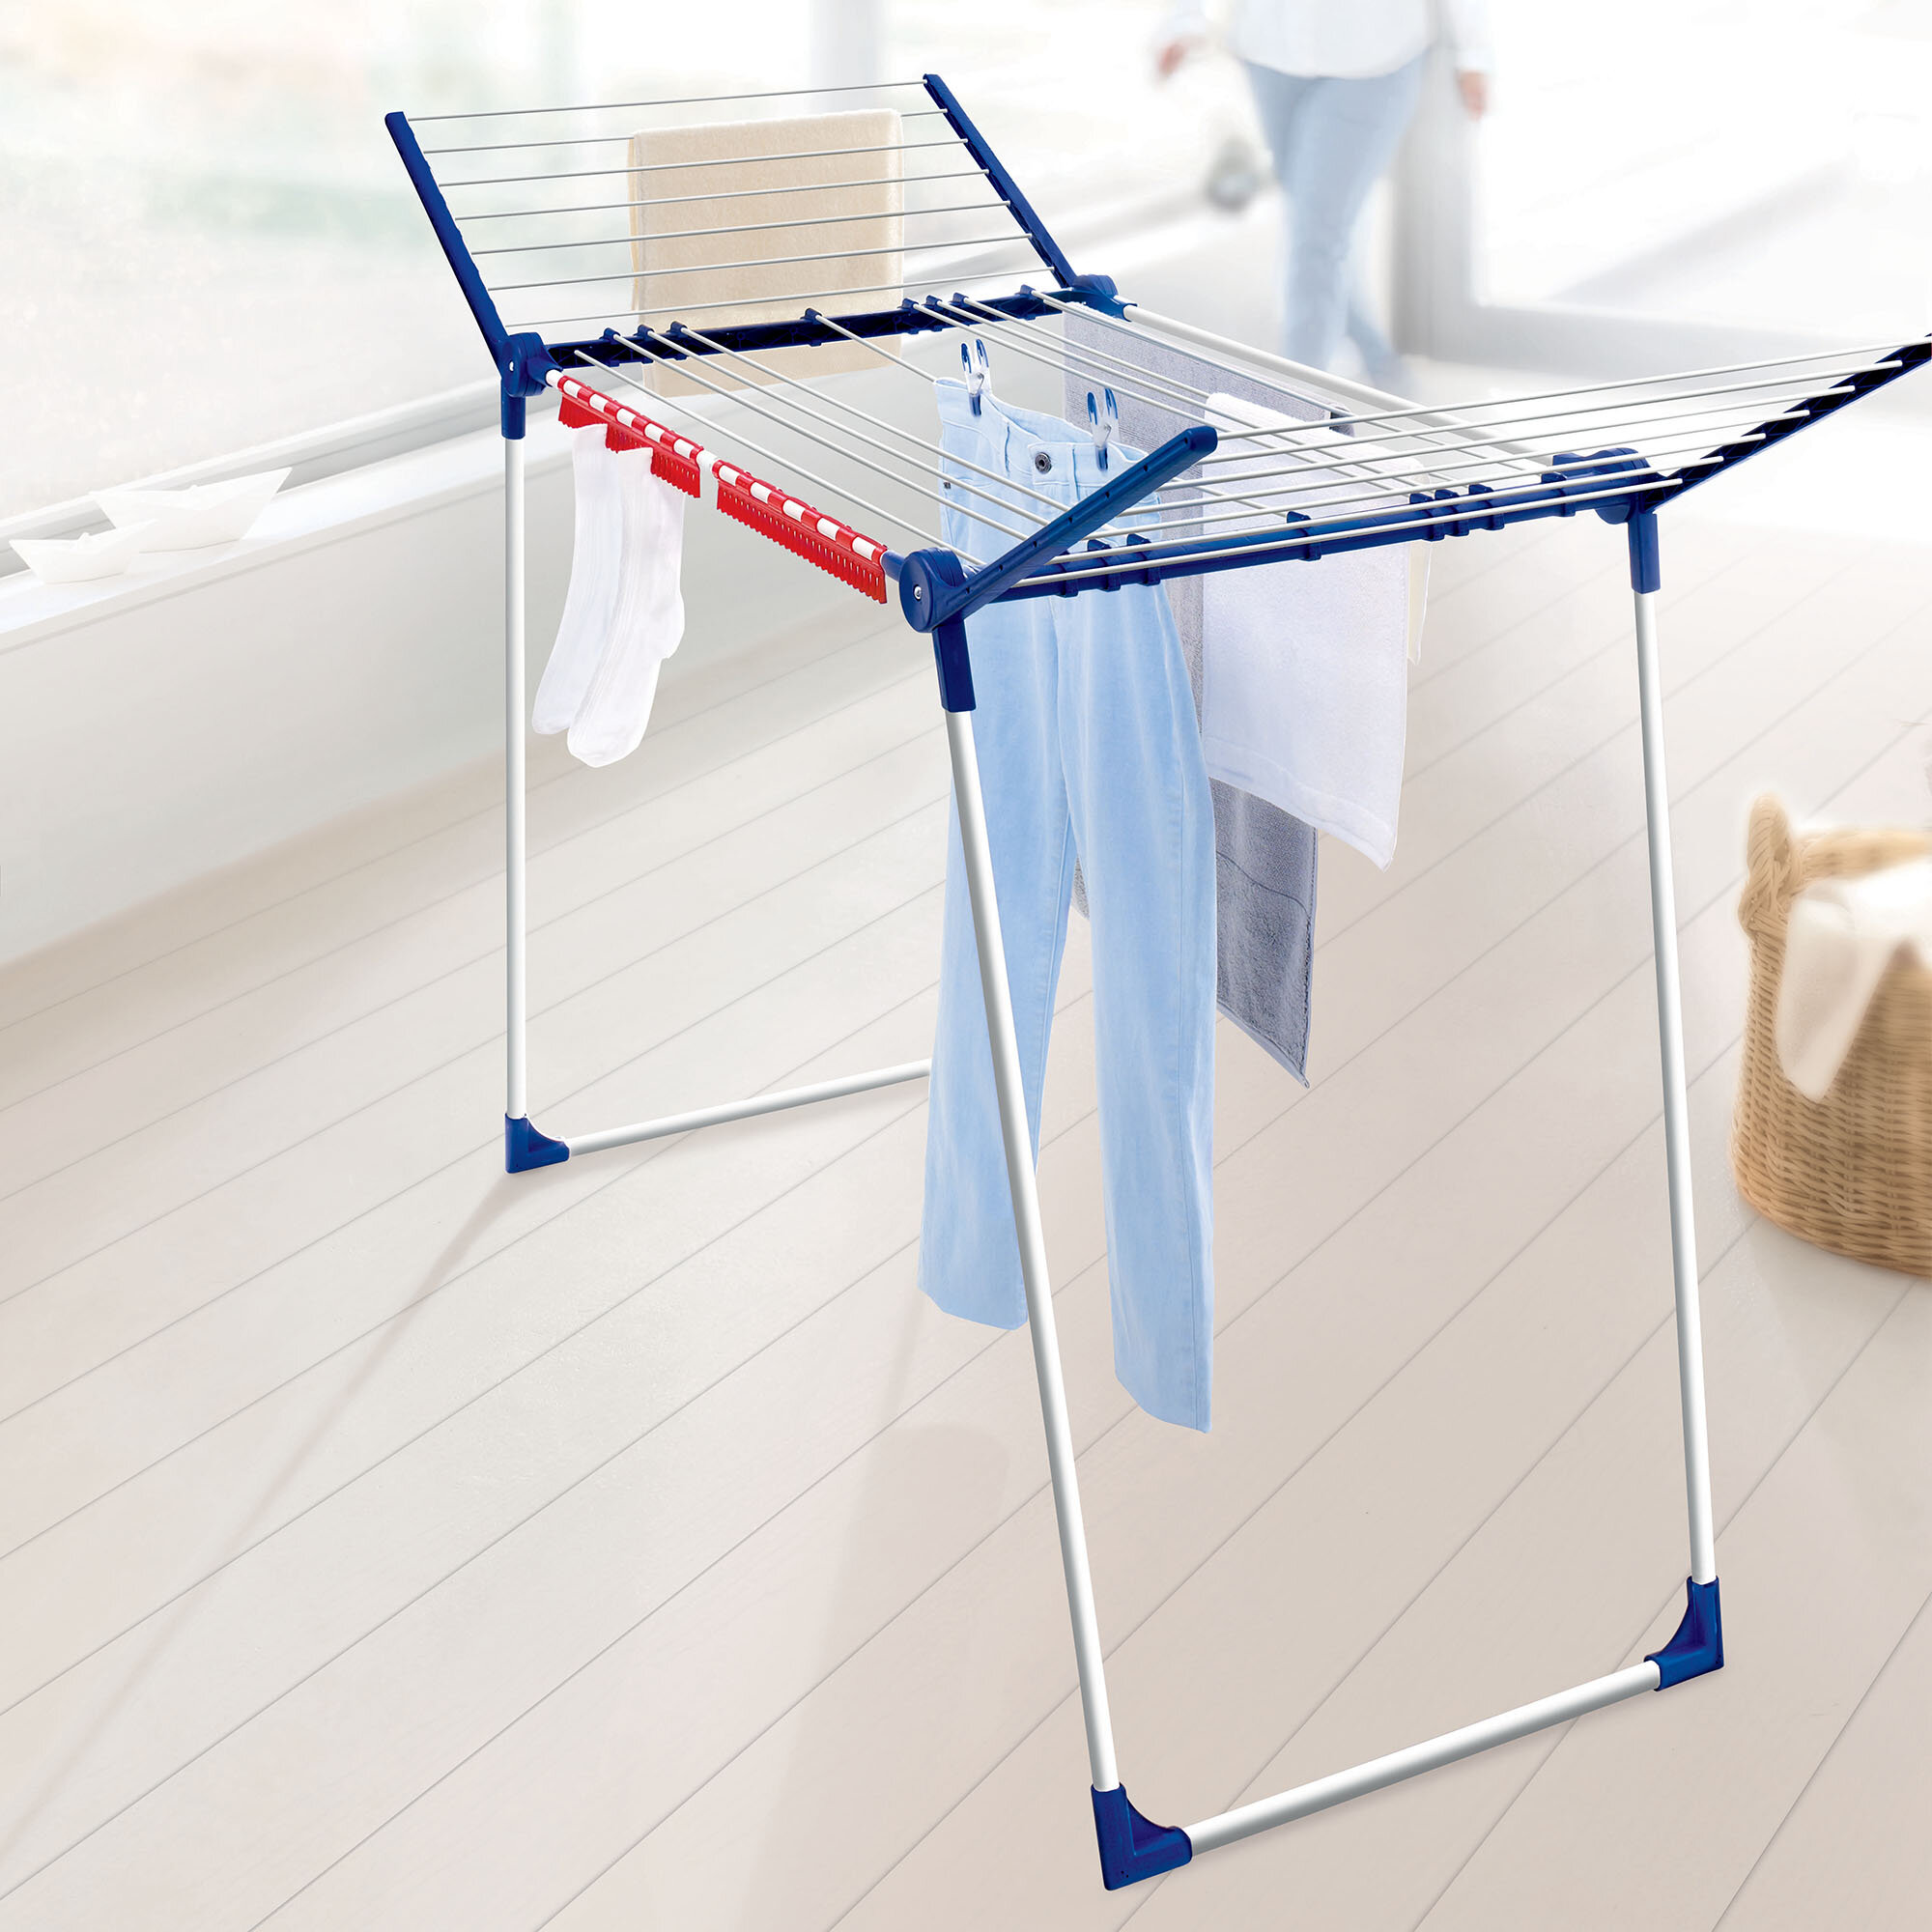 Leifheit Varioline L Winged Clothes Drying Rack With Adjustable